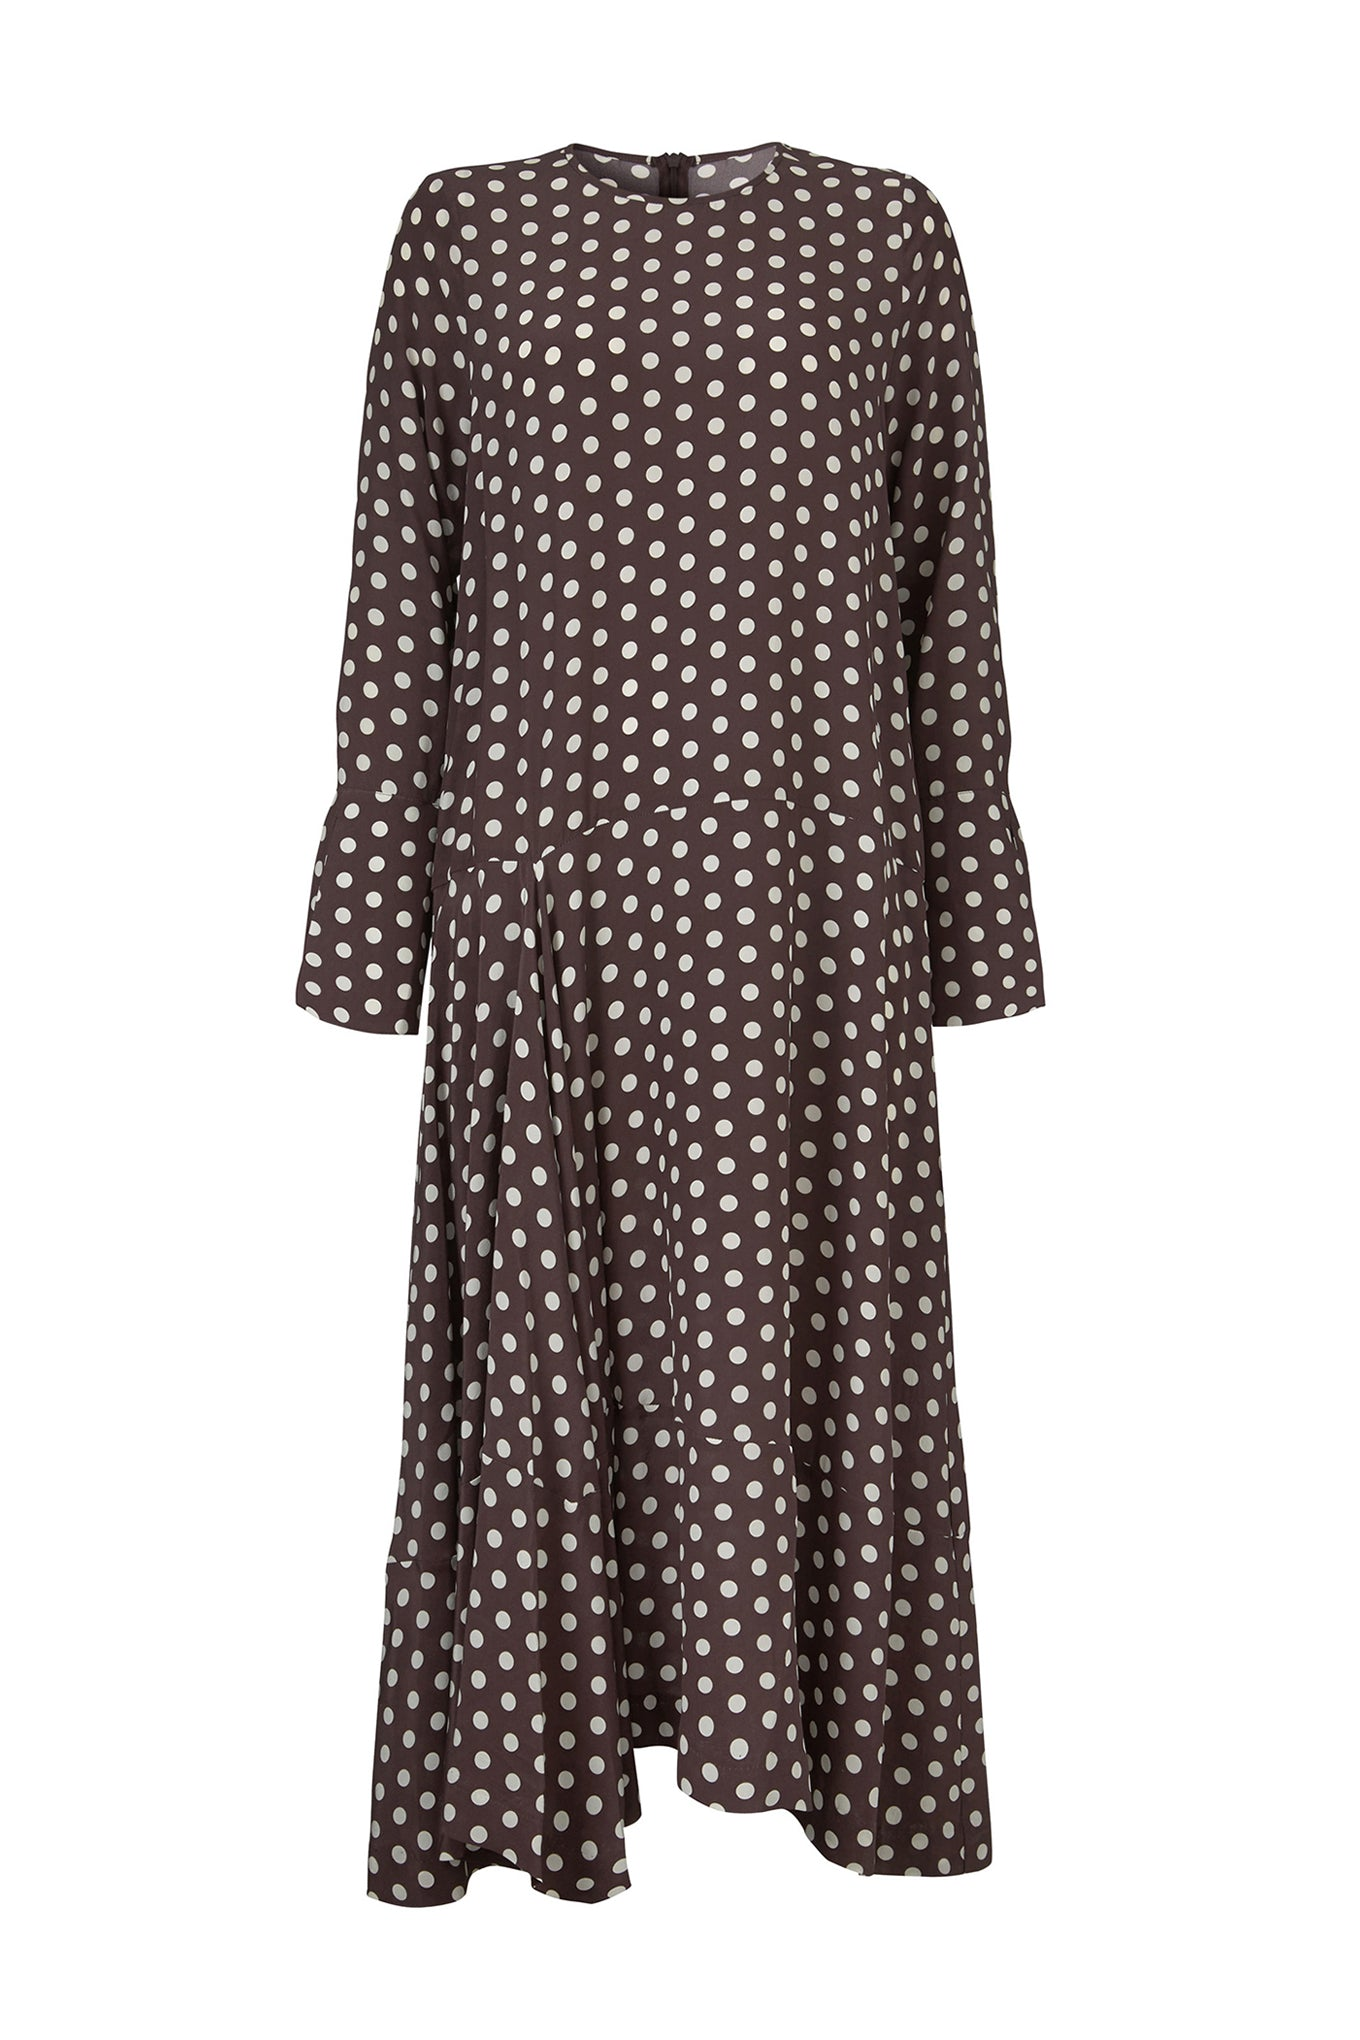 KAI DRESS - DARK CHOCOLATE/WHITE DOT